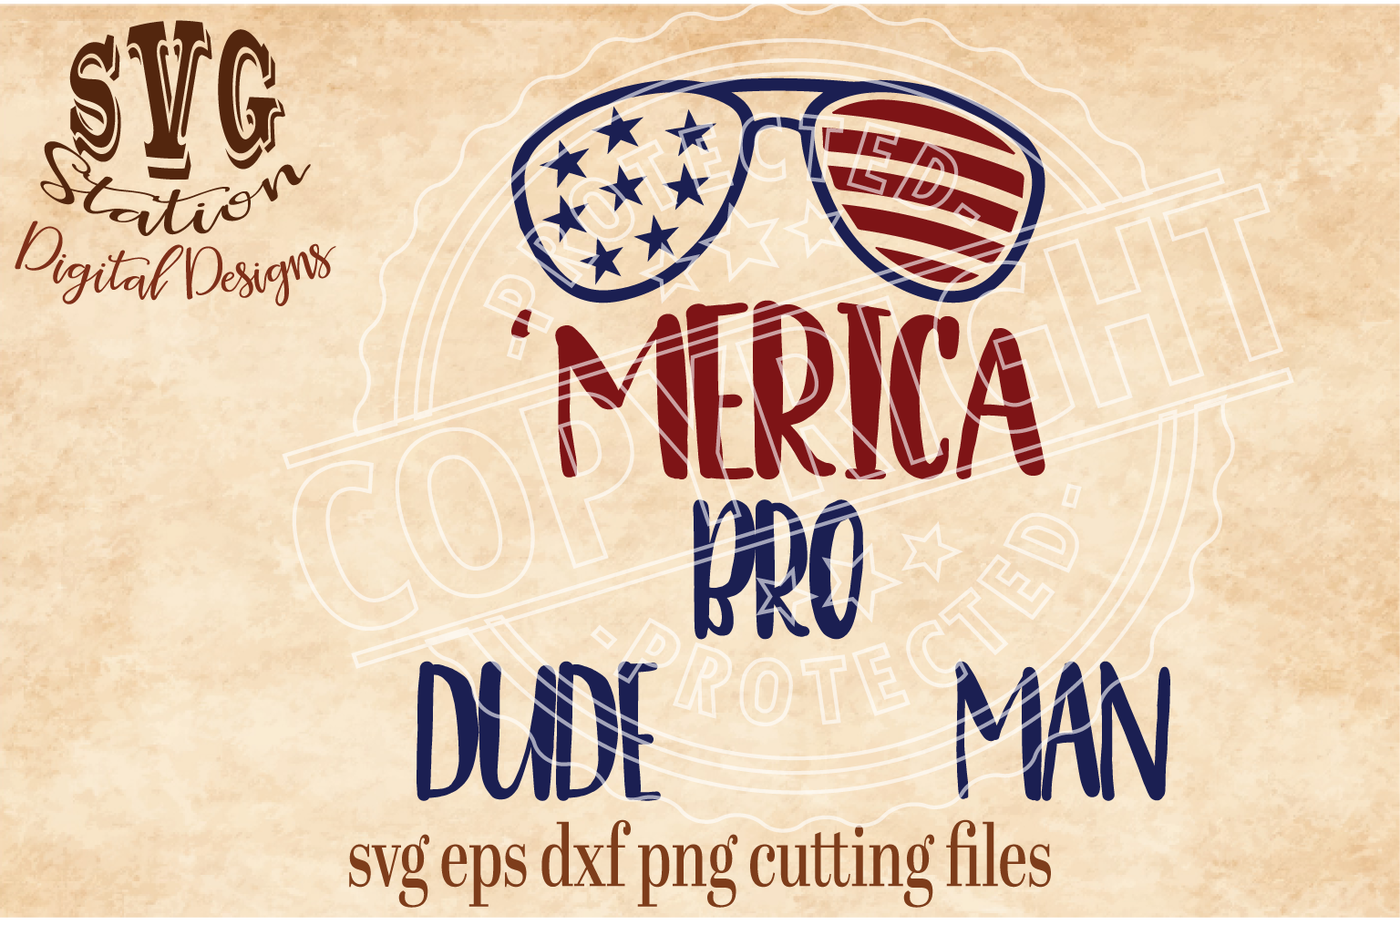 Merica Sunglasses Svg Dxf Png Eps Cutting File Silhouette Cricut Scal By Svg Station Thehungryjpeg Com